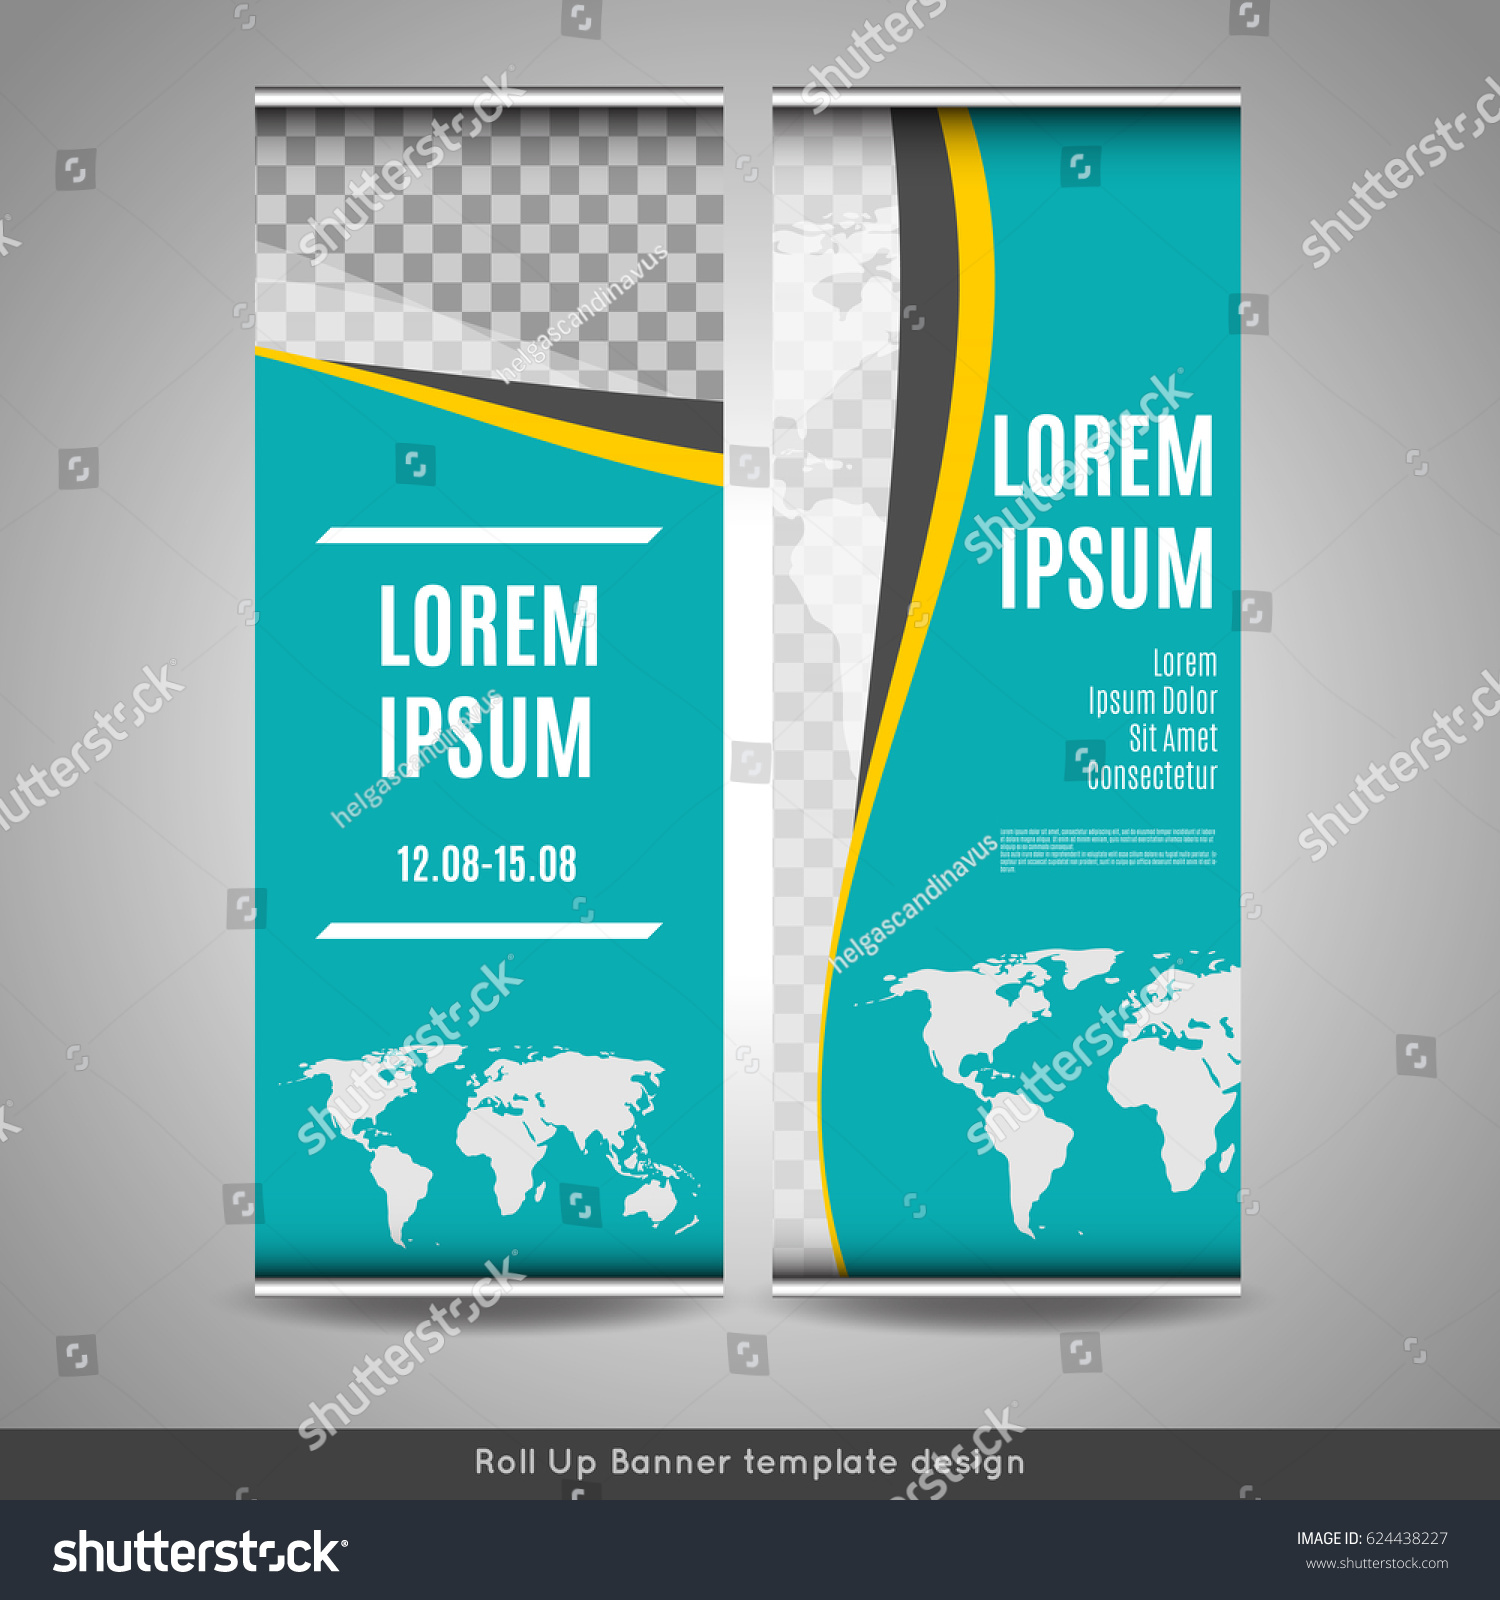 Roll Banner Template Design World Map Stock Vector (Royalty Free